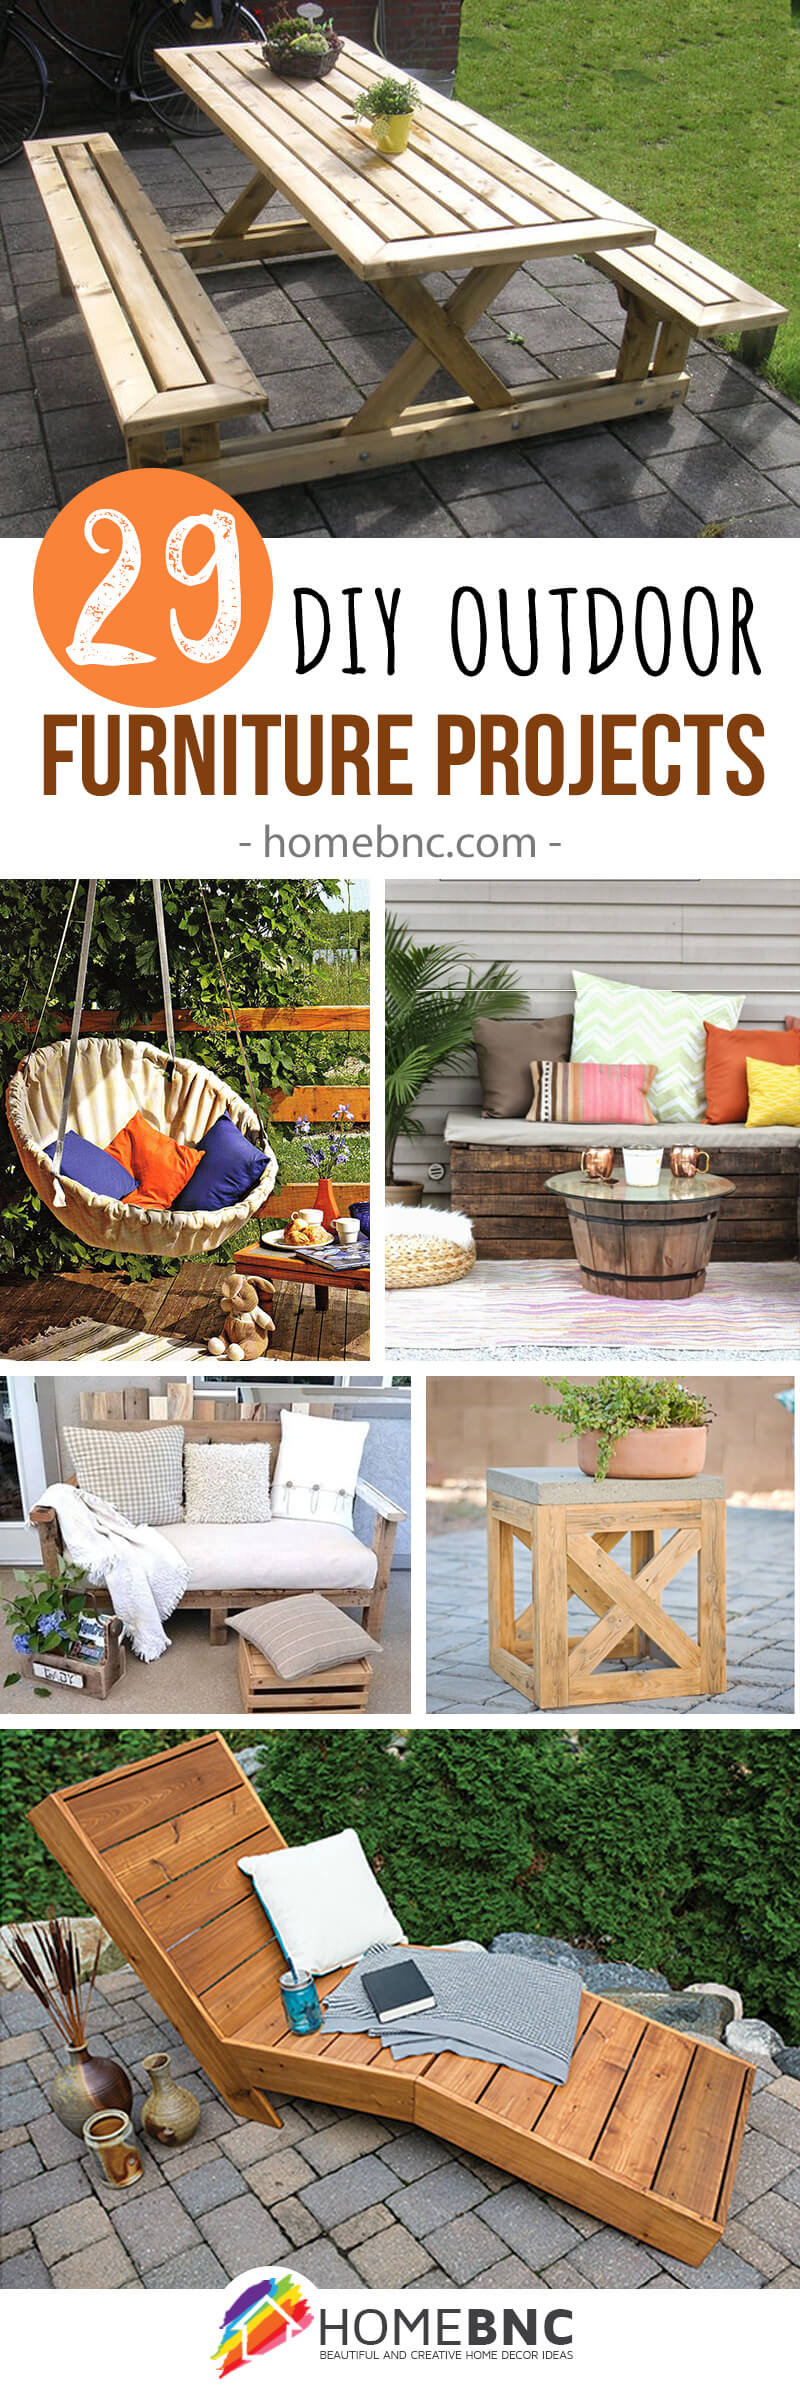 DIY Outdoor Furnitures For Garden Lovers